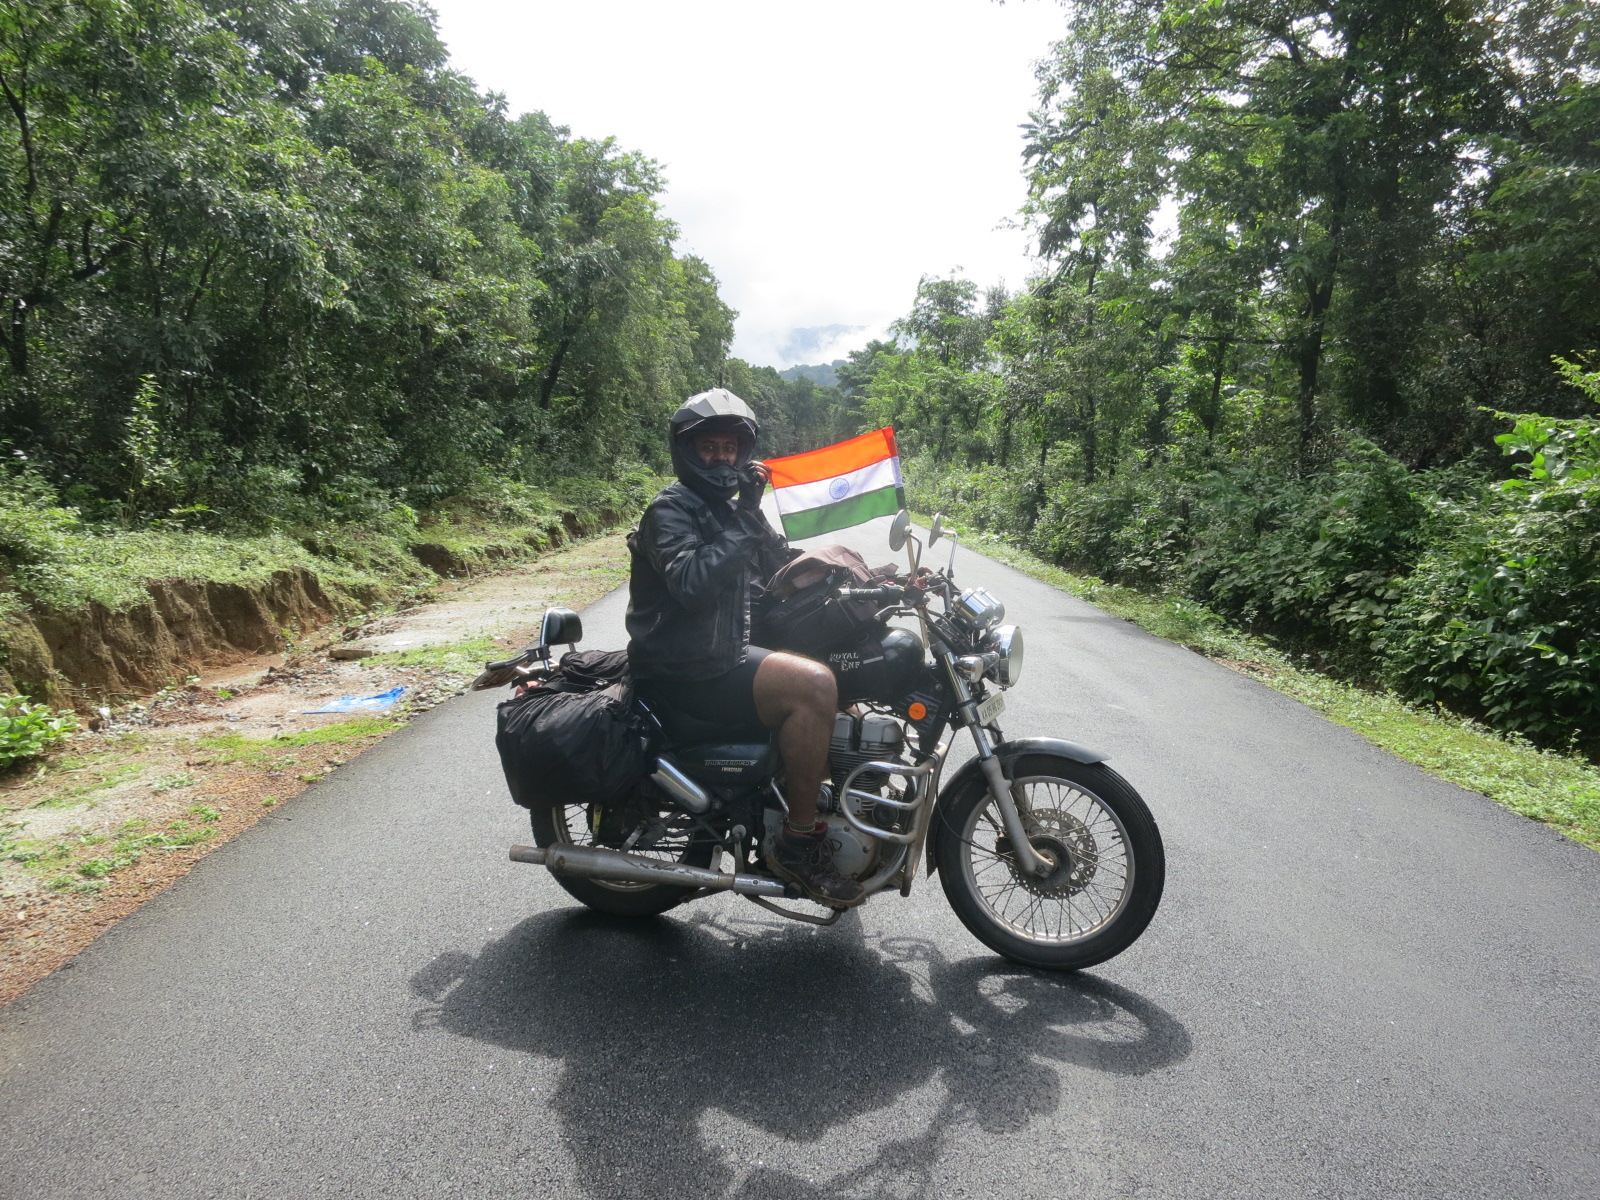 Independence day motorcycle ride through the rainforests of Agumbe